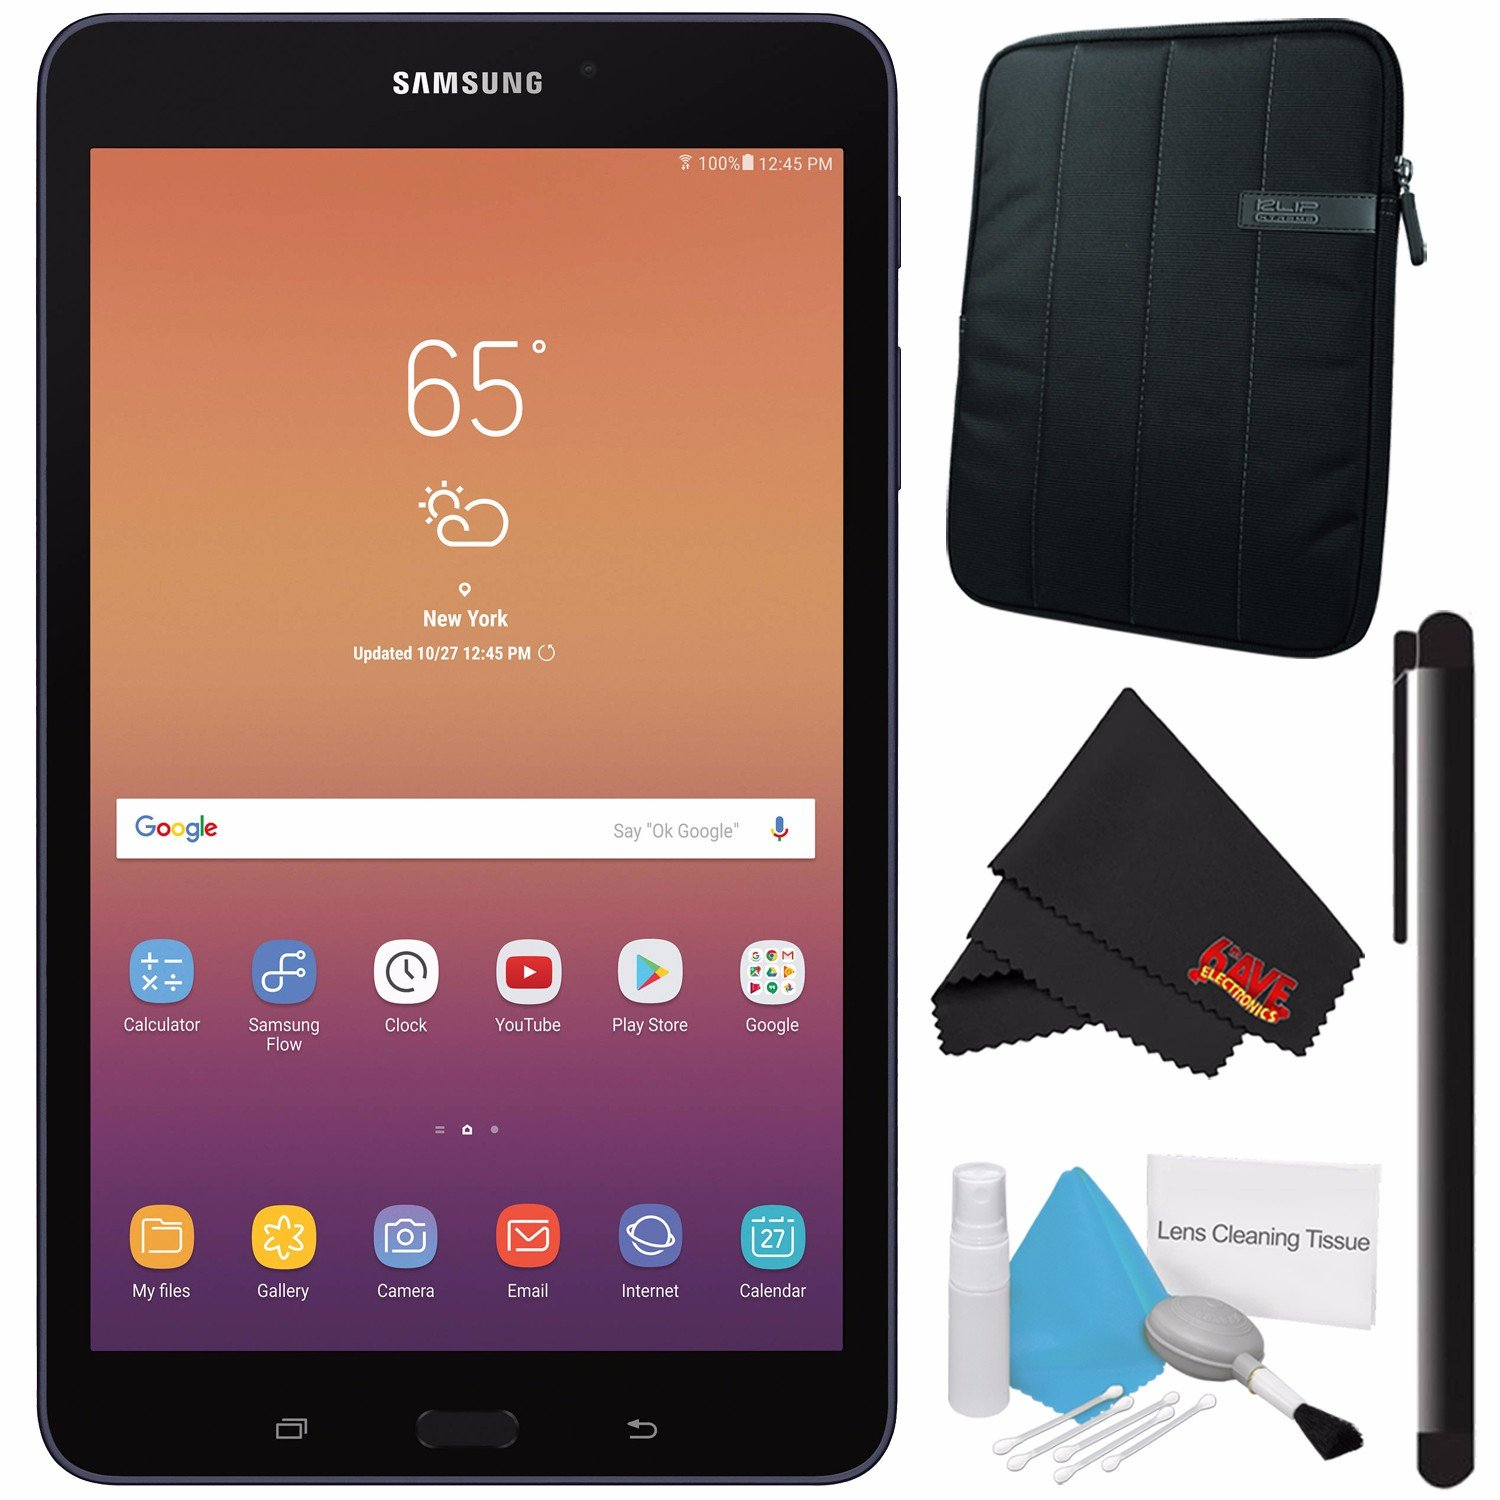 Samsung 8.0'' Galaxy Tab A 8.0 32GB Tablet (Wi-Fi Only, Black) SM-T380NZKEXAR + Deluxe Cleaning Kit + MicroFiber Cloth + Universal Stylus for Tablets + Tablet Neoprene Sleeve 10.1'' Case (Black) Bundle